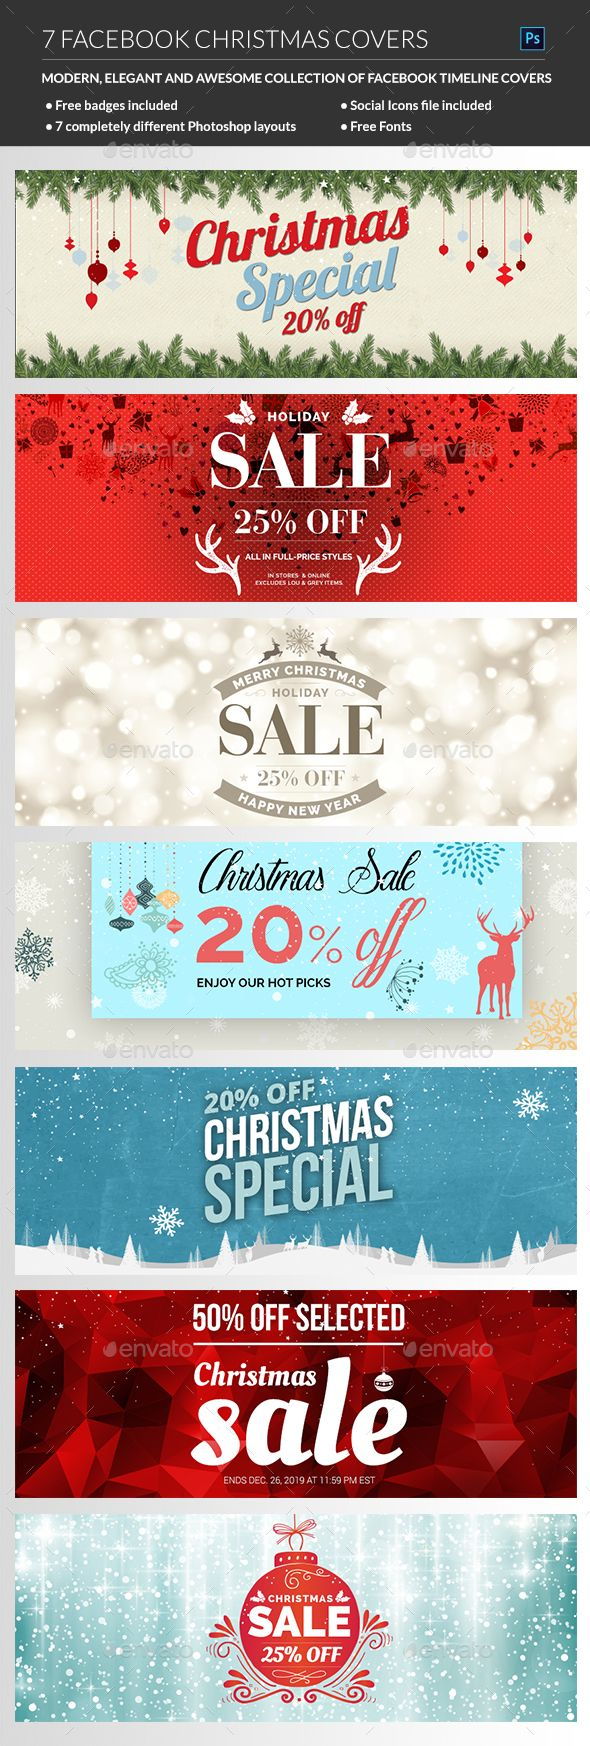 Christmas Facebook Cover Templates PSD #design Download: http://graphicriver.net/item/christmas-facebook-cover/13949268?ref=ksioks